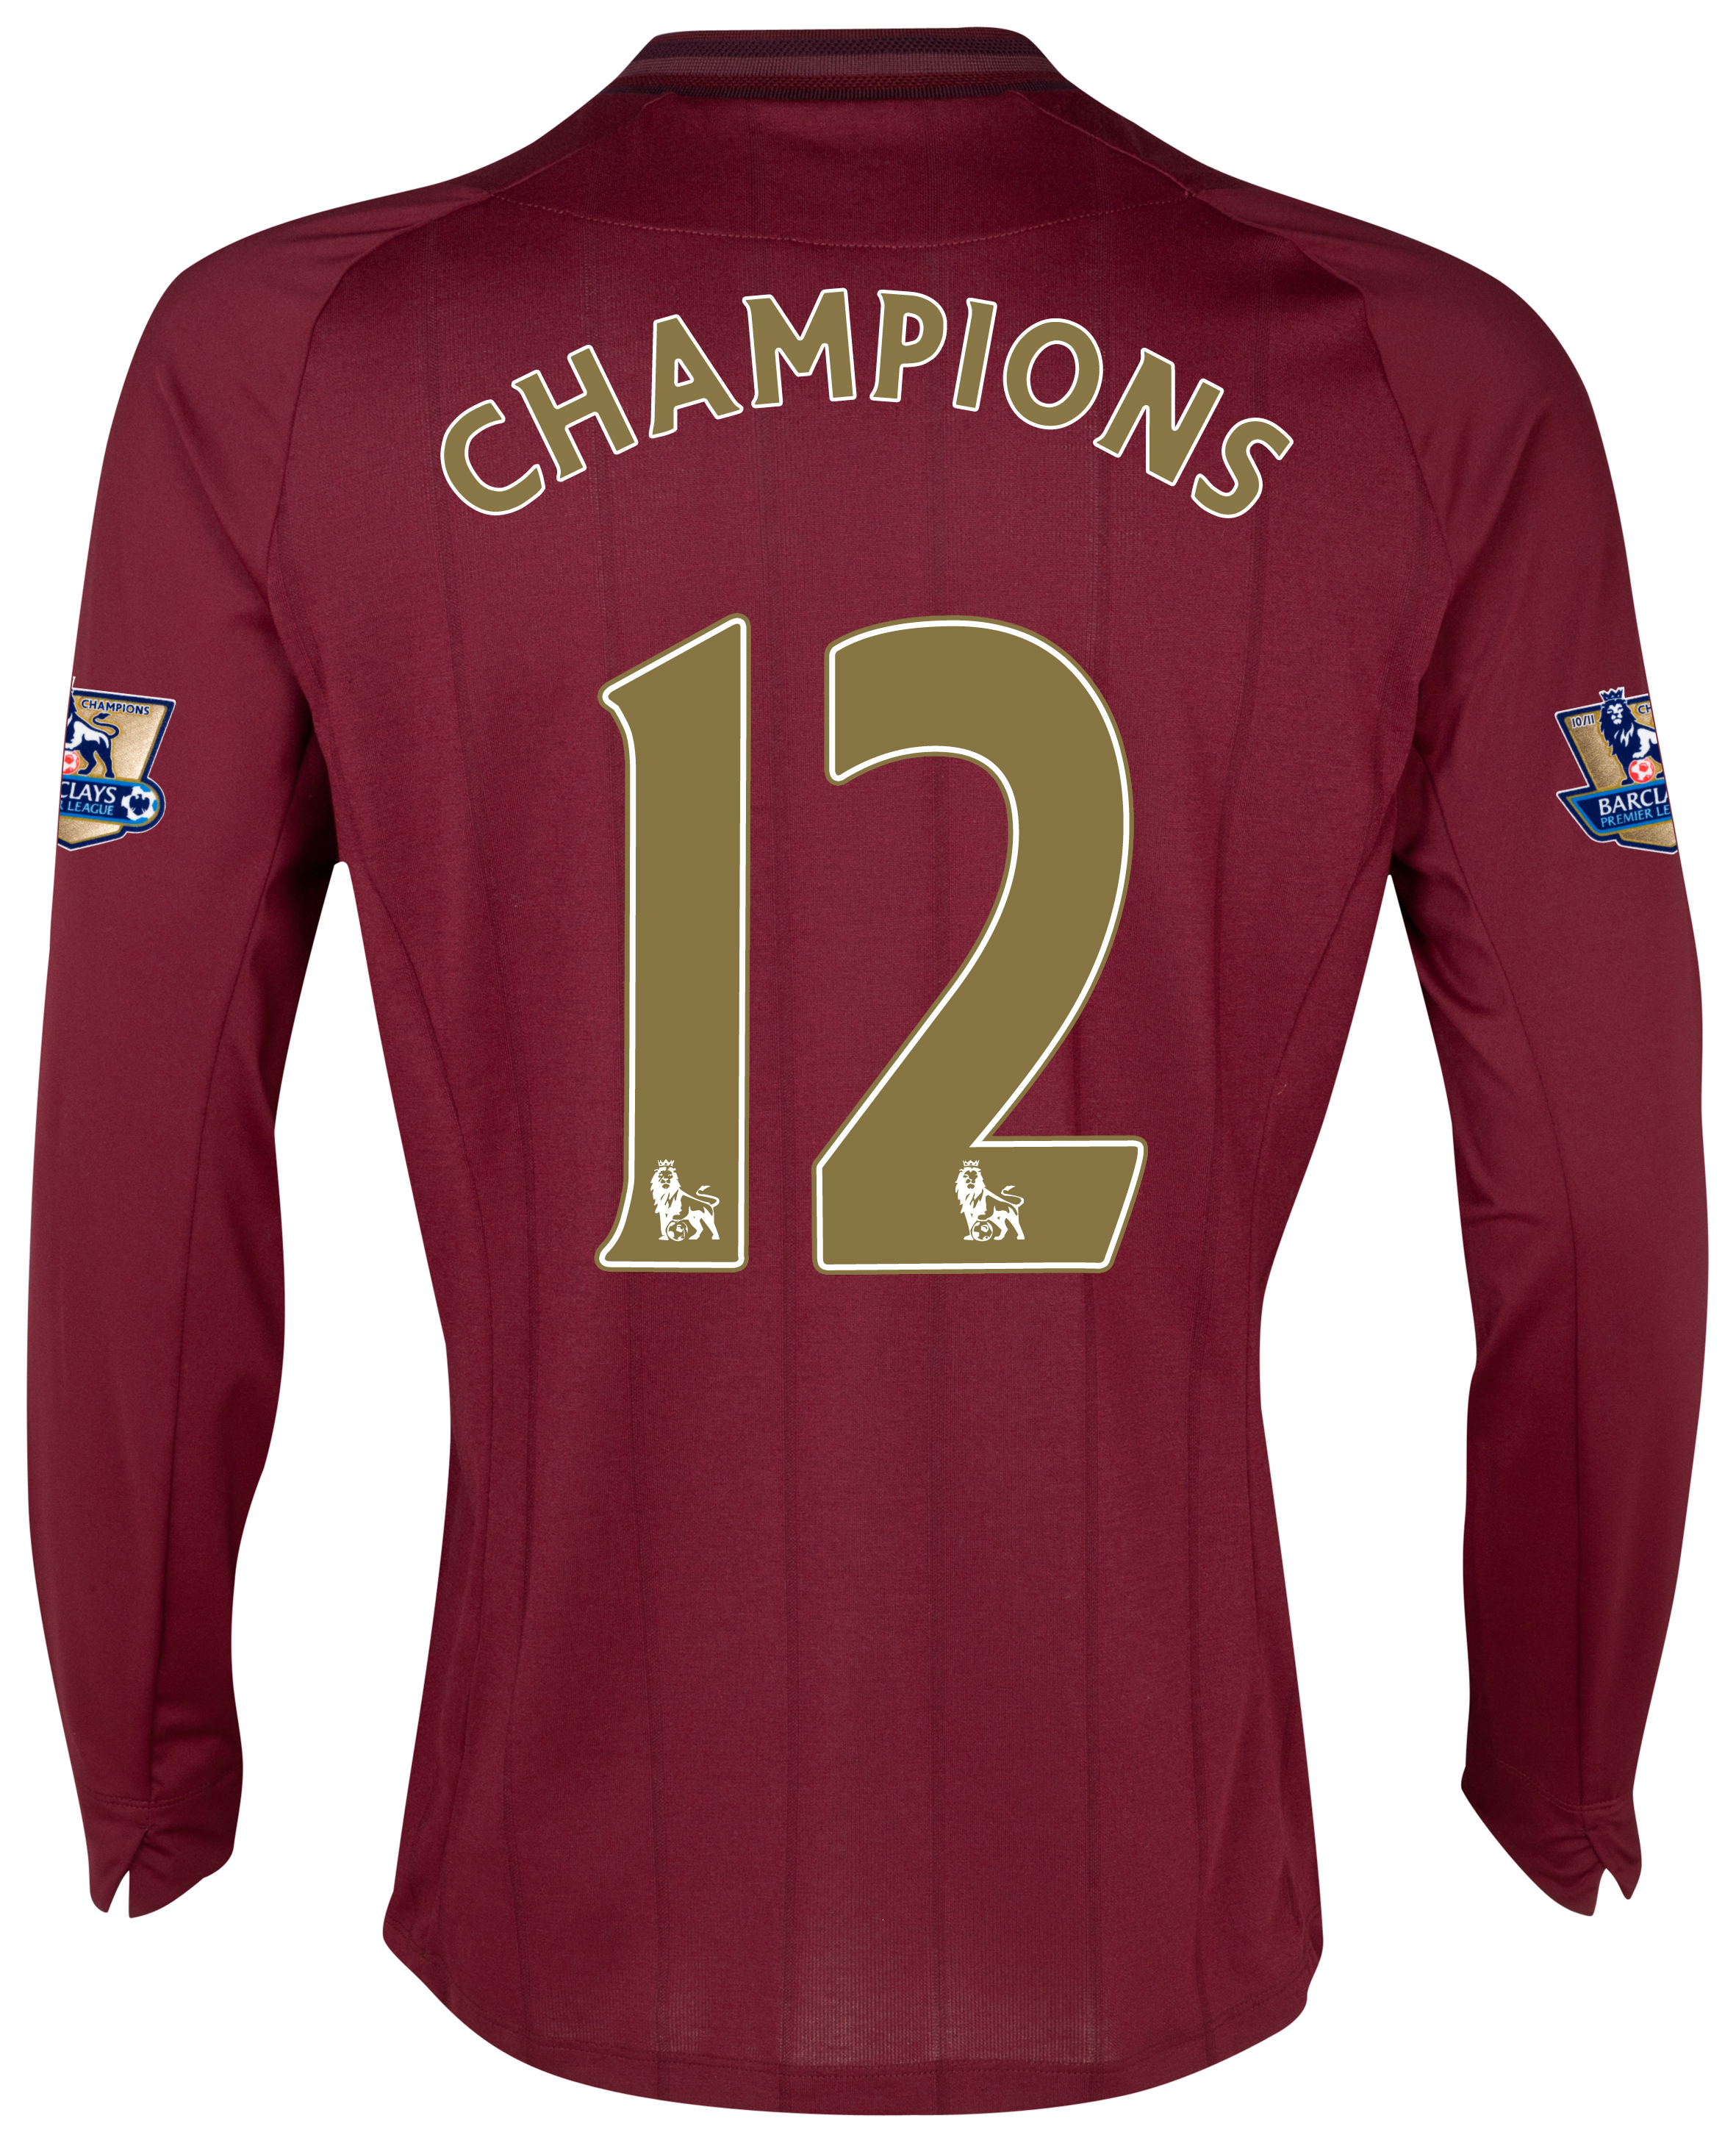 Manchester City Away Shirt 2012/13 with Champions 12 printing and Premier League Champions Badges - Long Sleeved